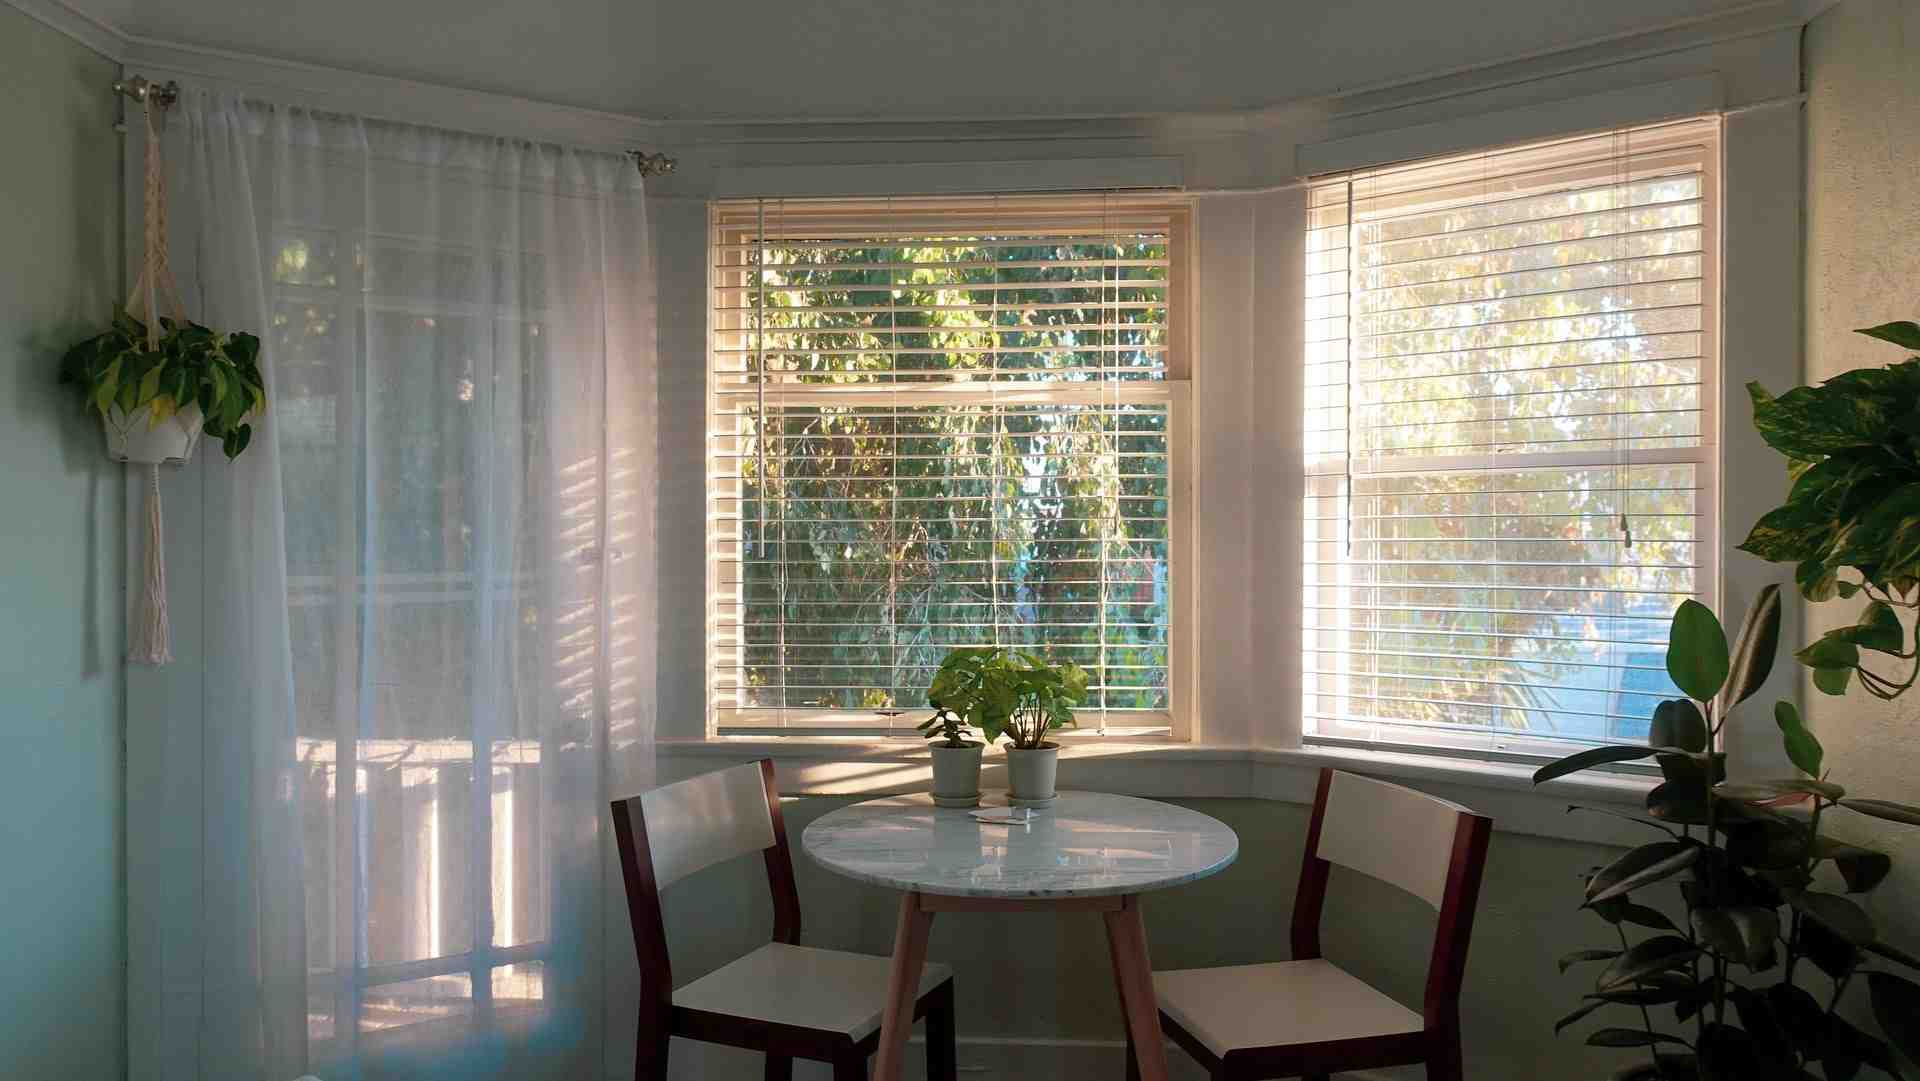 Breakfast nook with a bay windows and white blinds